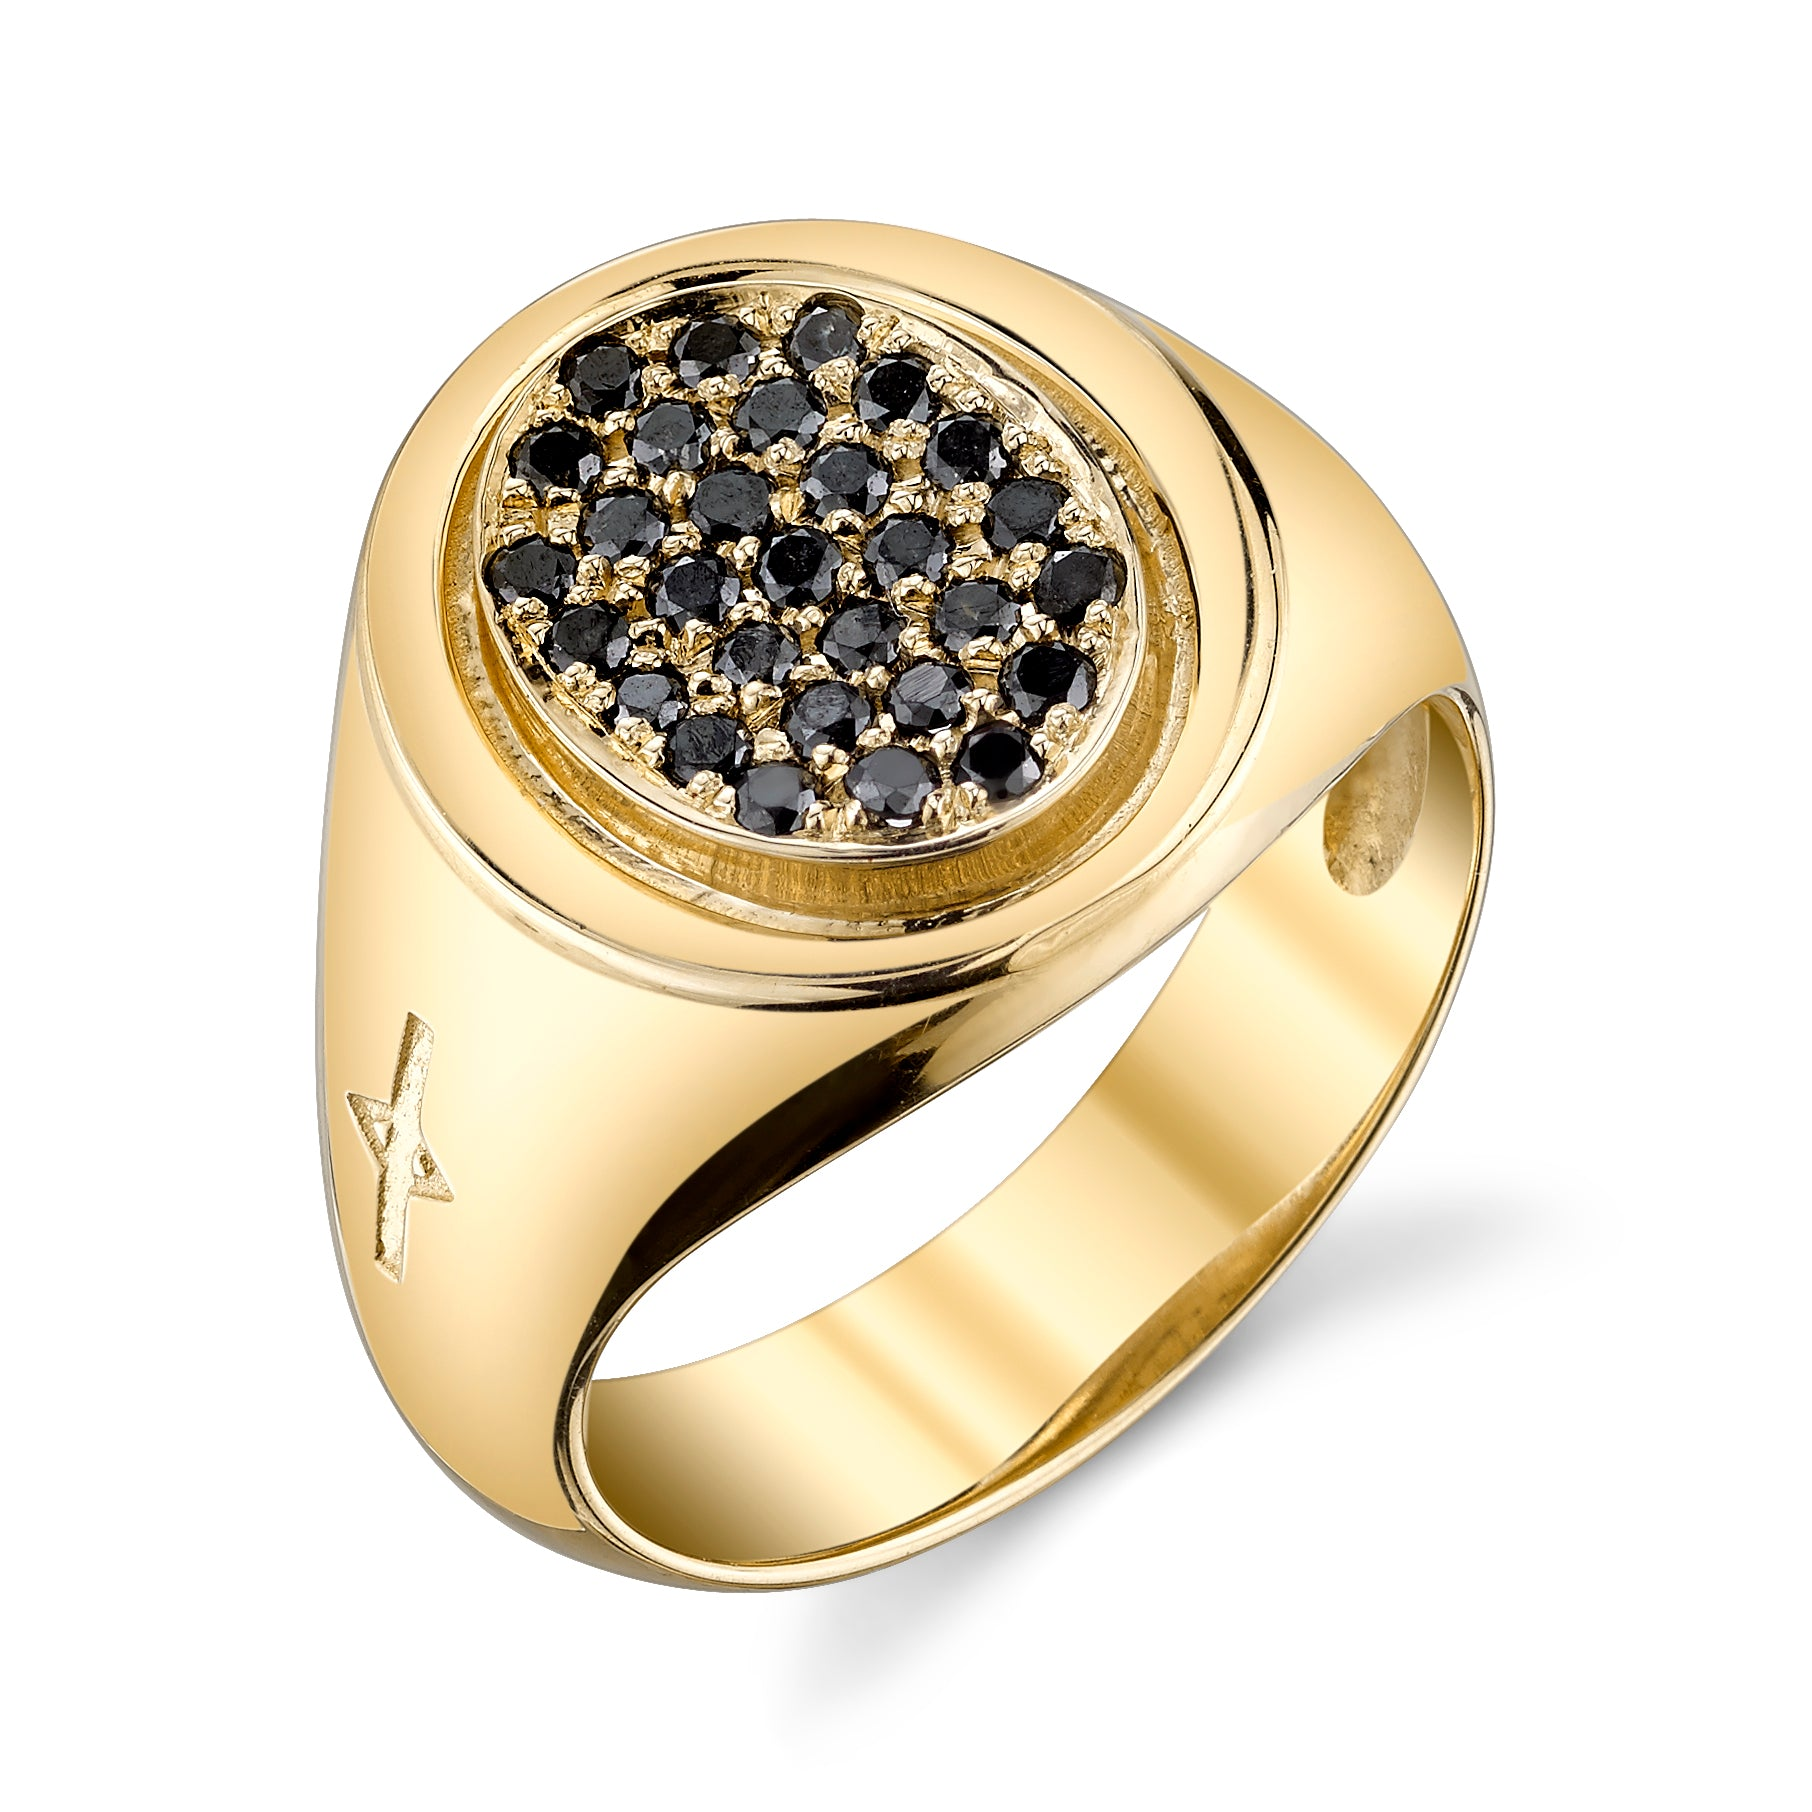 Oval Signet Ring With Black Pavé - Gabriela Artigas